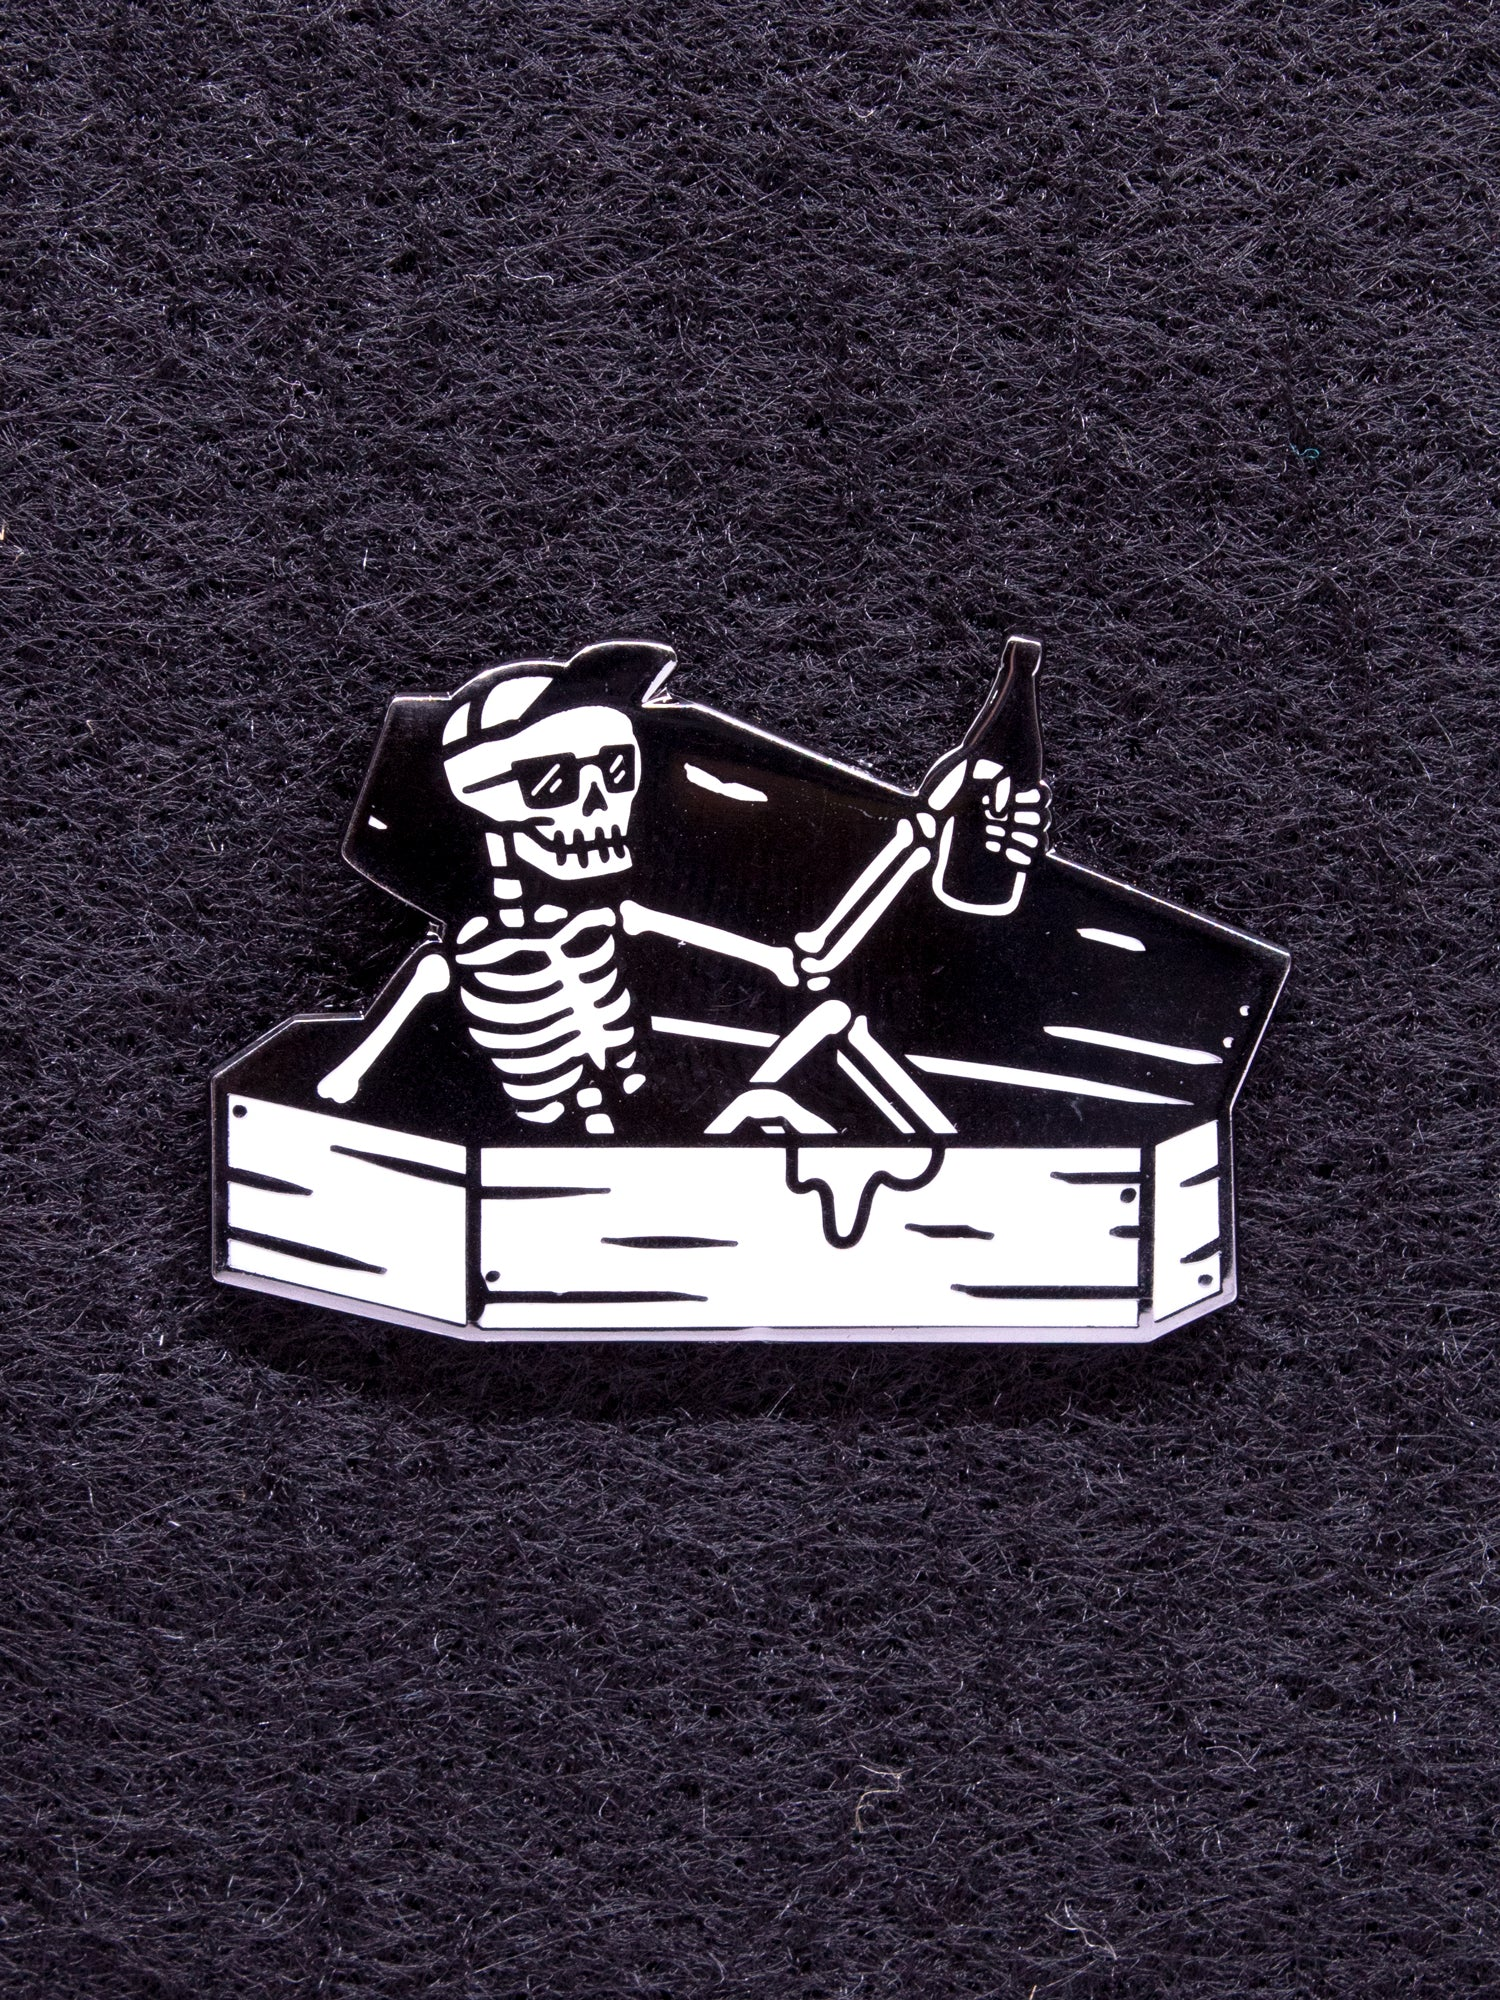 Strike Gently Co. Coffin Guy Pin